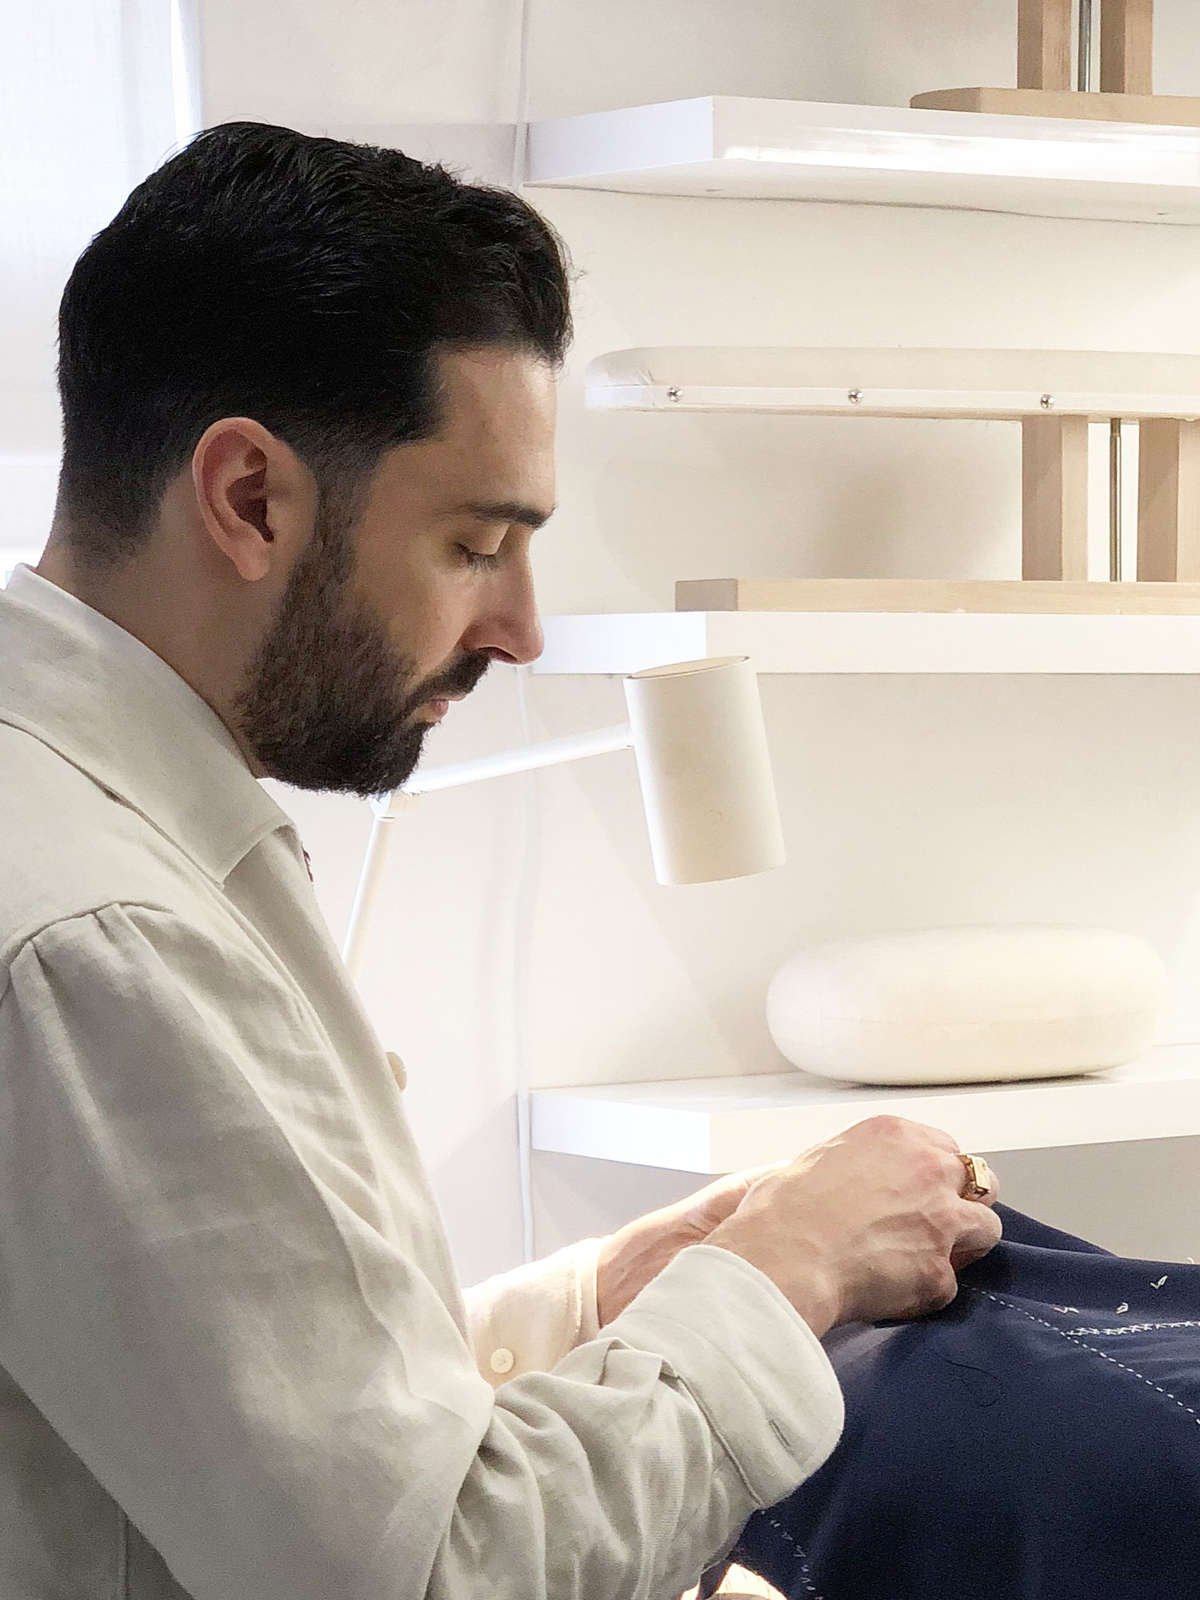 Carl Sciarra director and bespoke tailor at Sartoria Sciarra hand sewing the seams on a bespoke jacket using Italian silk twist strengthened with bees wax. Bespoke suit made from a bright navy Loro Piana Zelander high twist wool fabric. Luxury bespoke Italian tailoring.